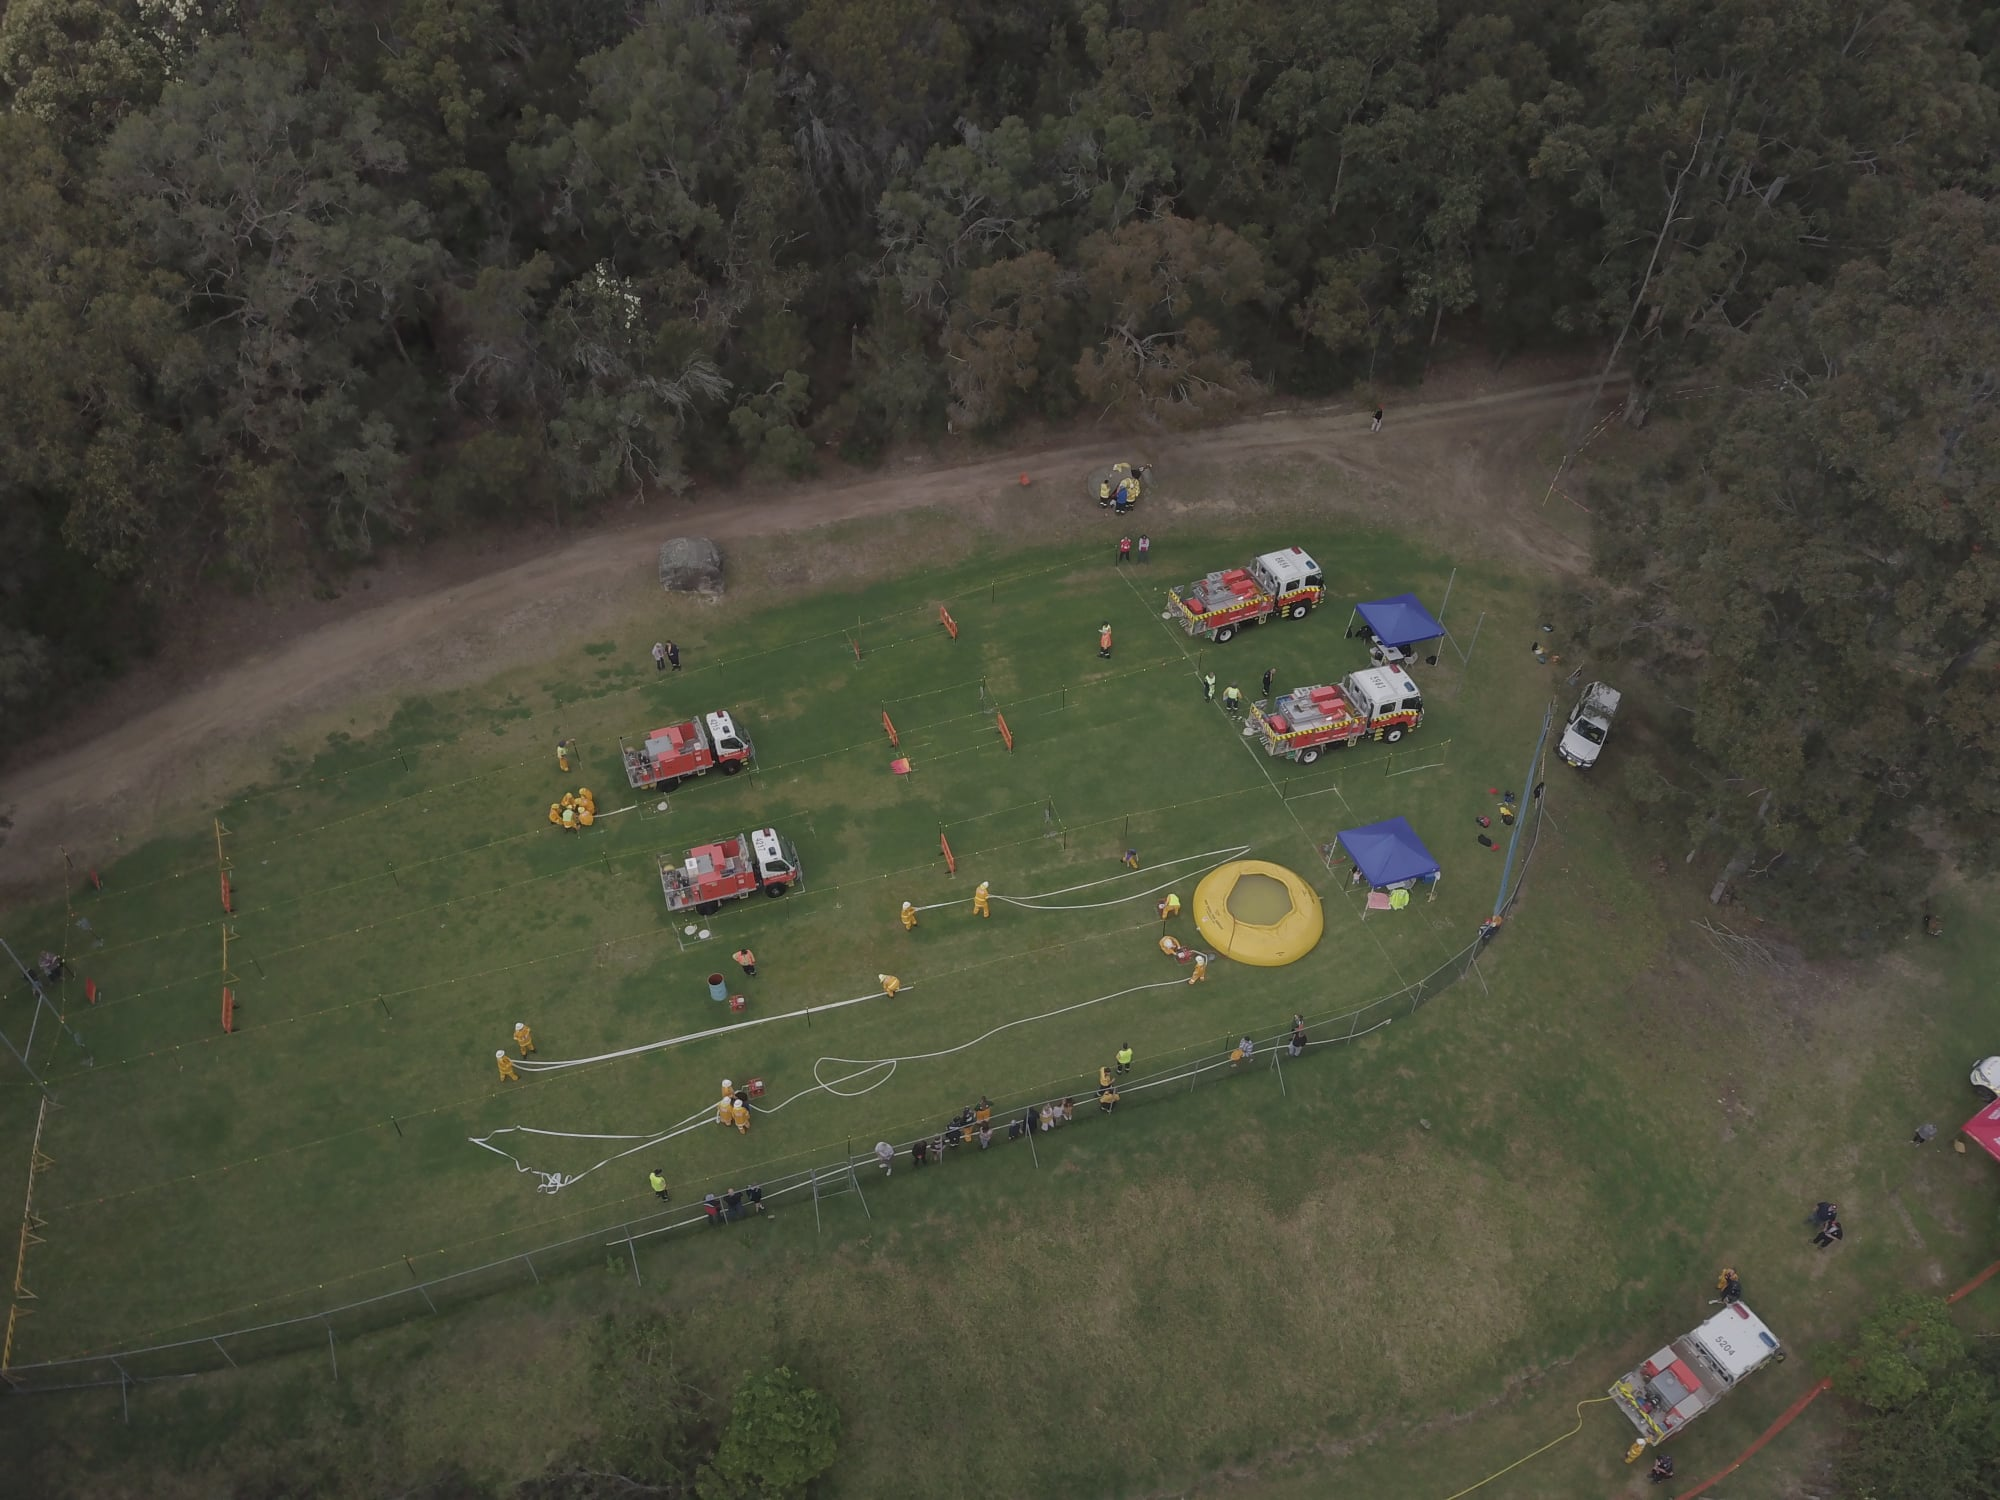 Australian Fire Cadet Championships Wesley Vision Valley October 2019 Photo: David Kissick from Berowra Waters Rural Fire Brigade